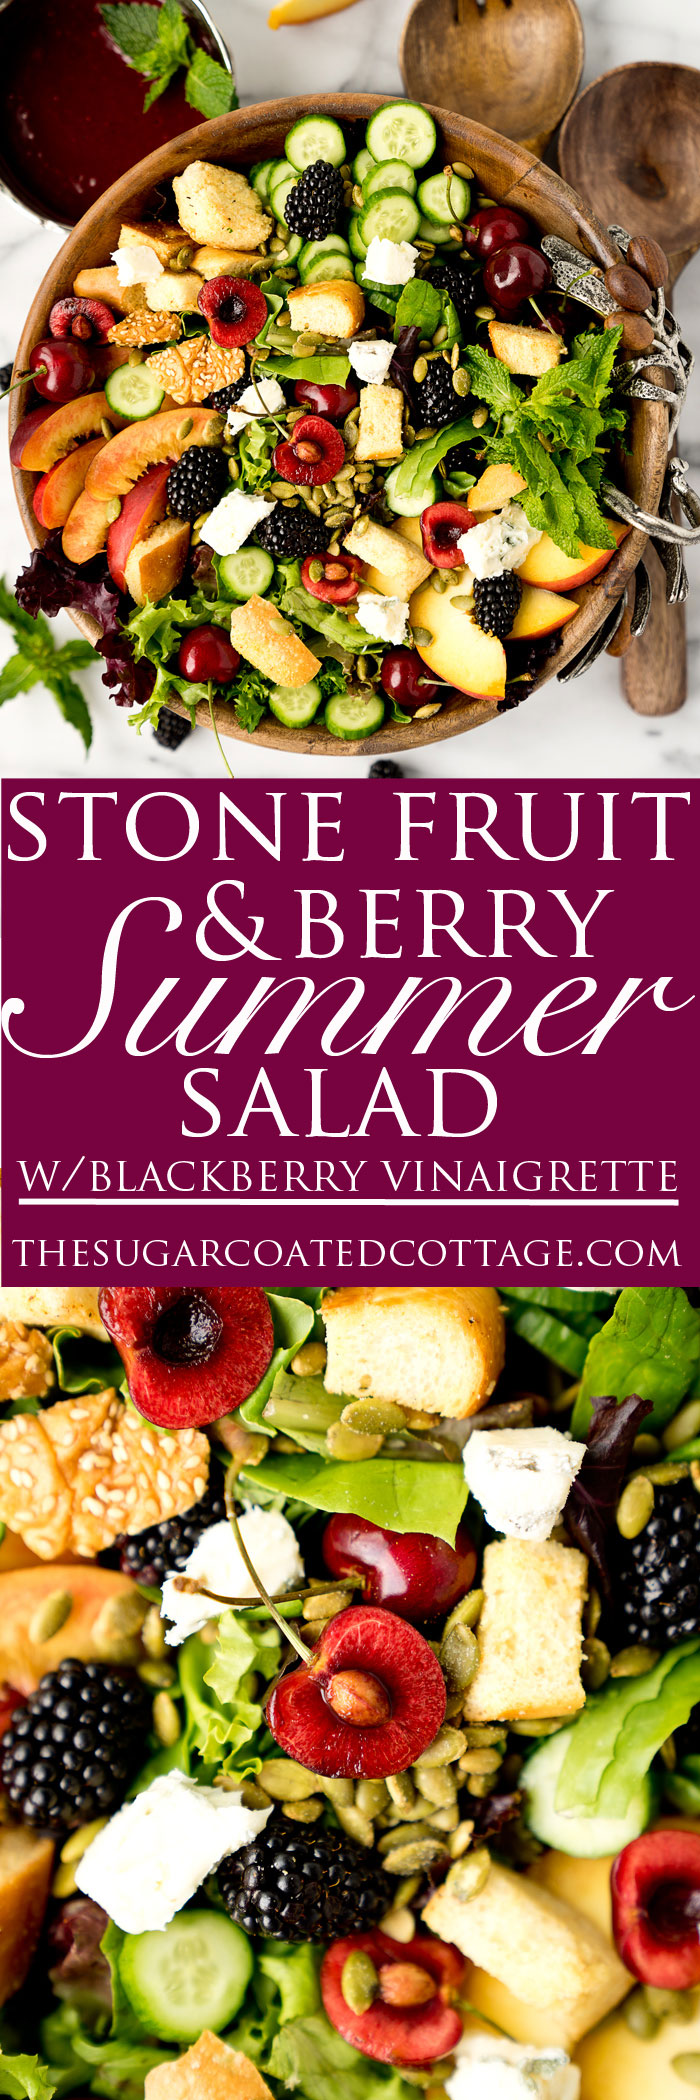 Stone Fruit and Berry Summer Salad with Balsamic Blackberry Vinaigrette. The salad you've been waiting for this summer! Peaches, nectarines, blackberries, cherries, herbs, roasted pepitas, toasty bread, cucumbers and gorgonzola. All drizzled with a generous serving of Balsamic Blackberry Vinaigrette dressing. | thesugarcoatedcottage.com